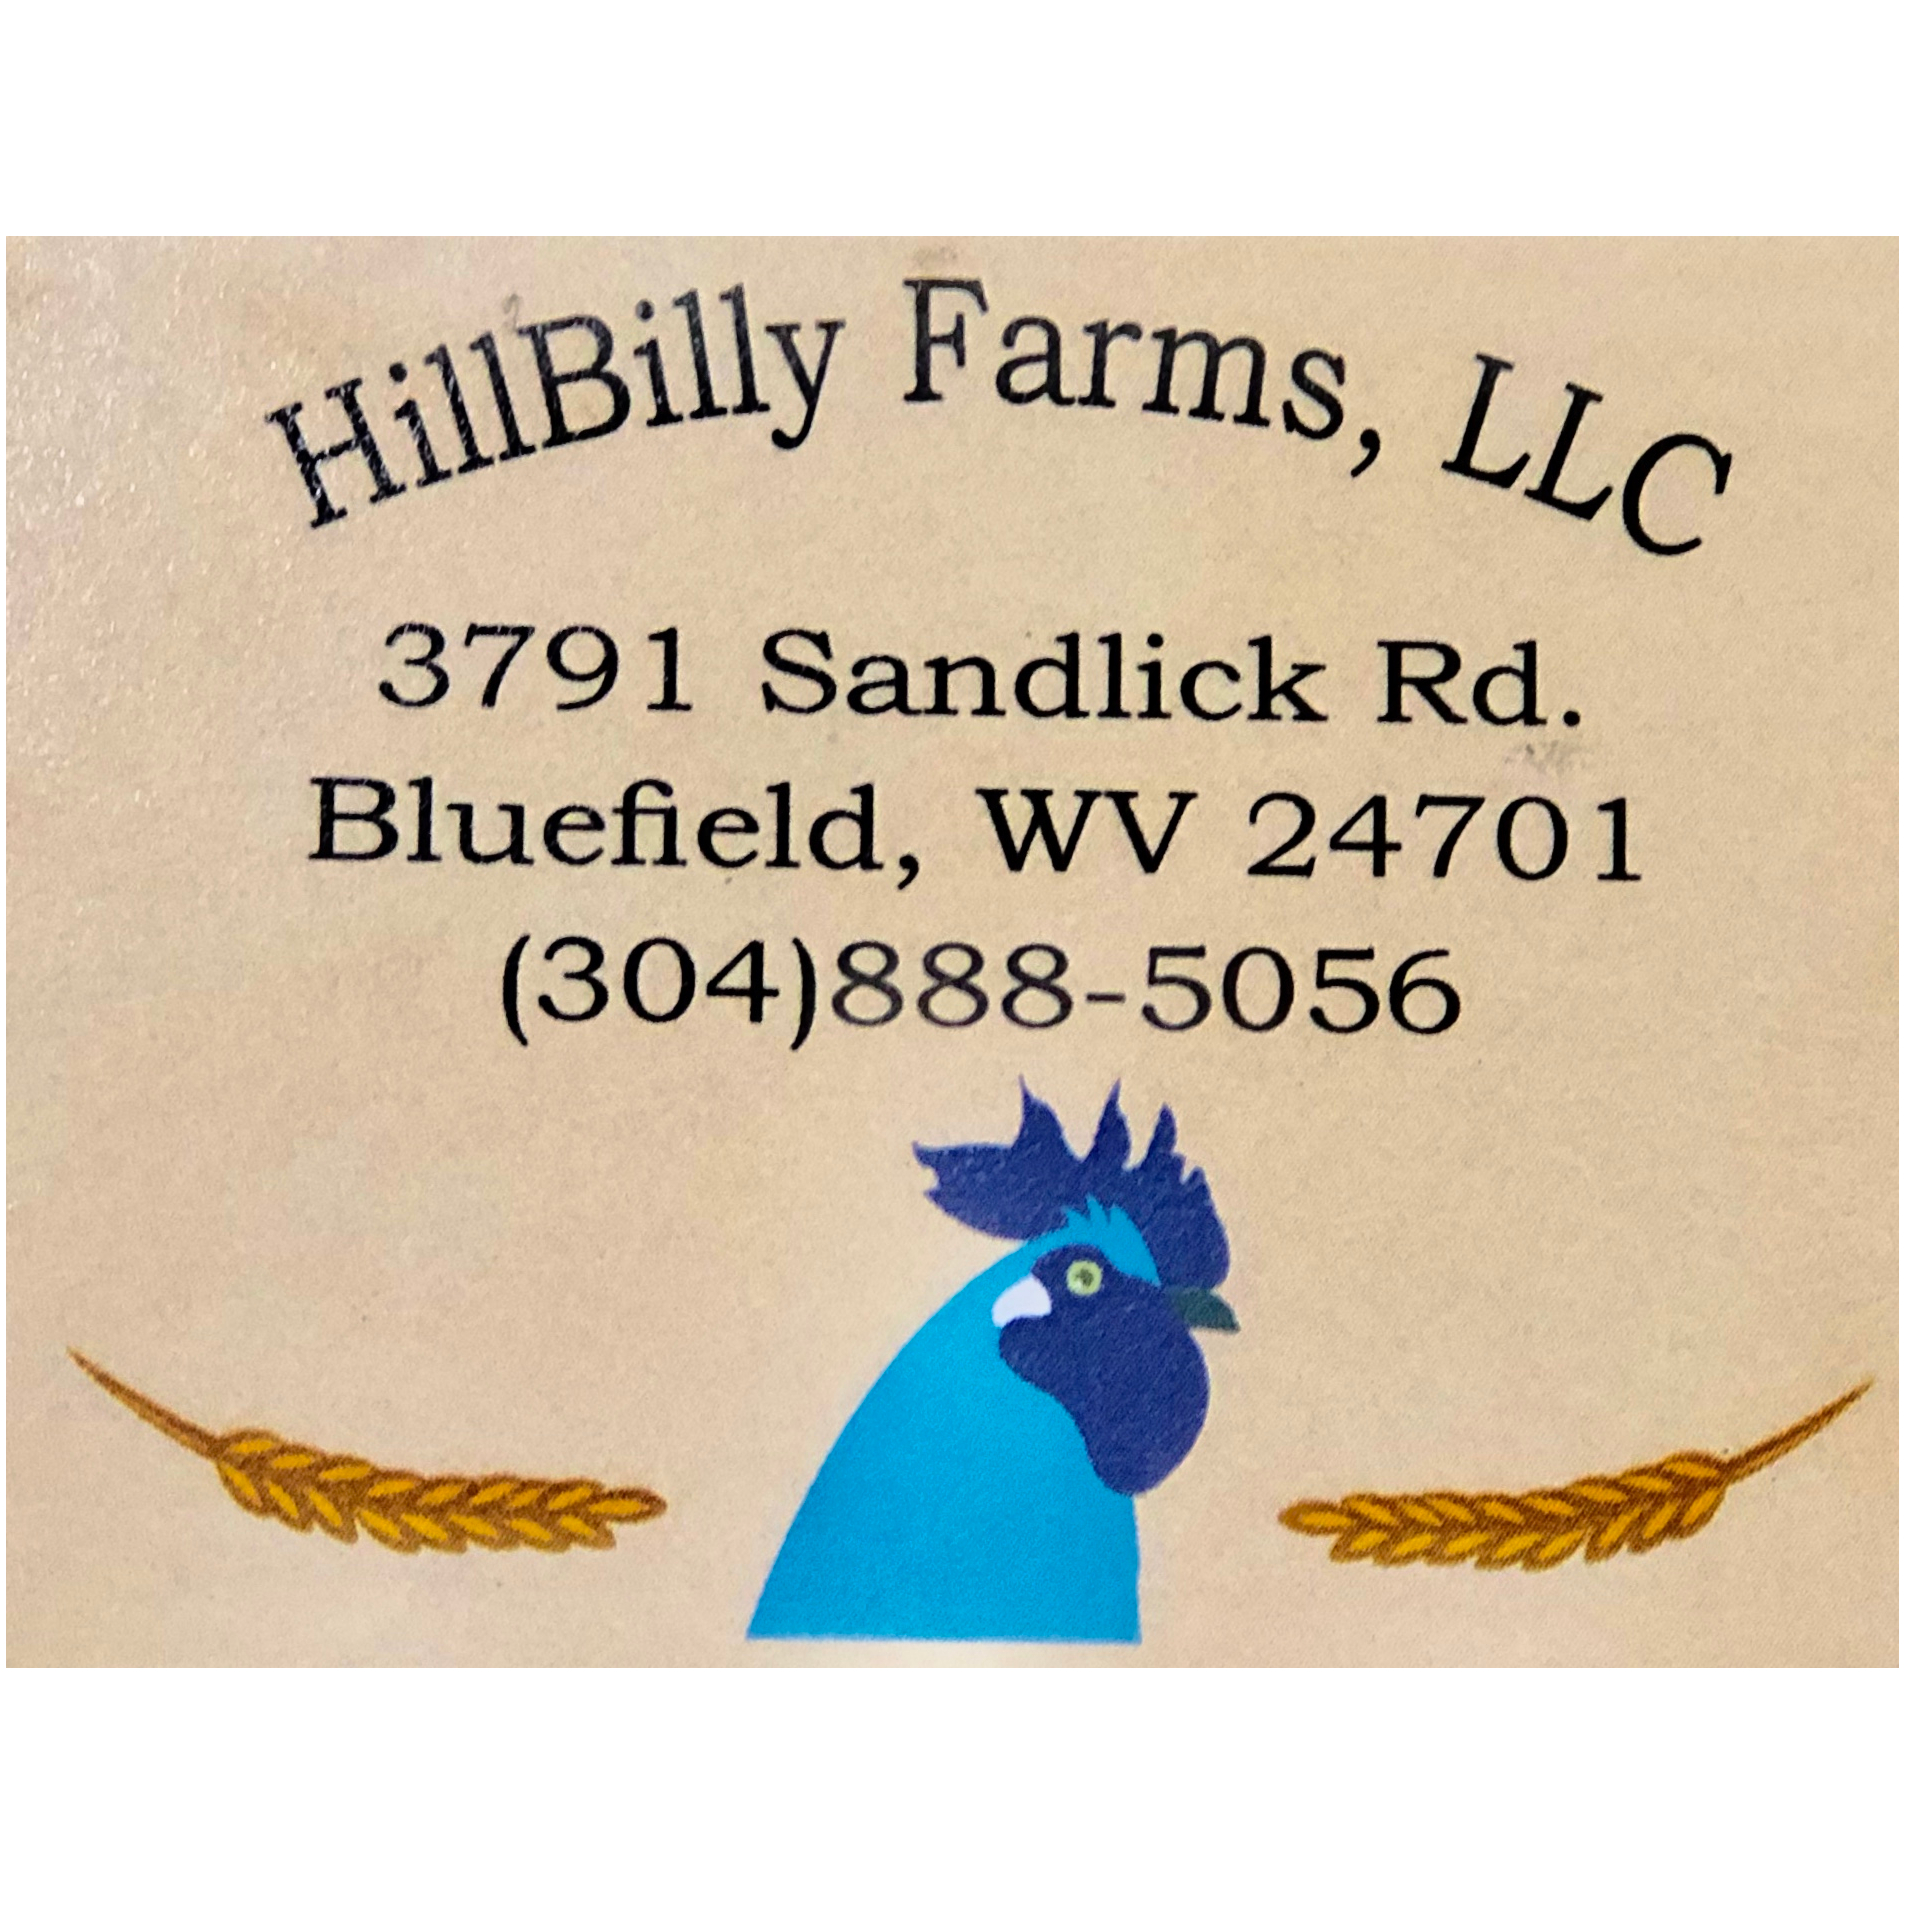 Hillbilly Farms